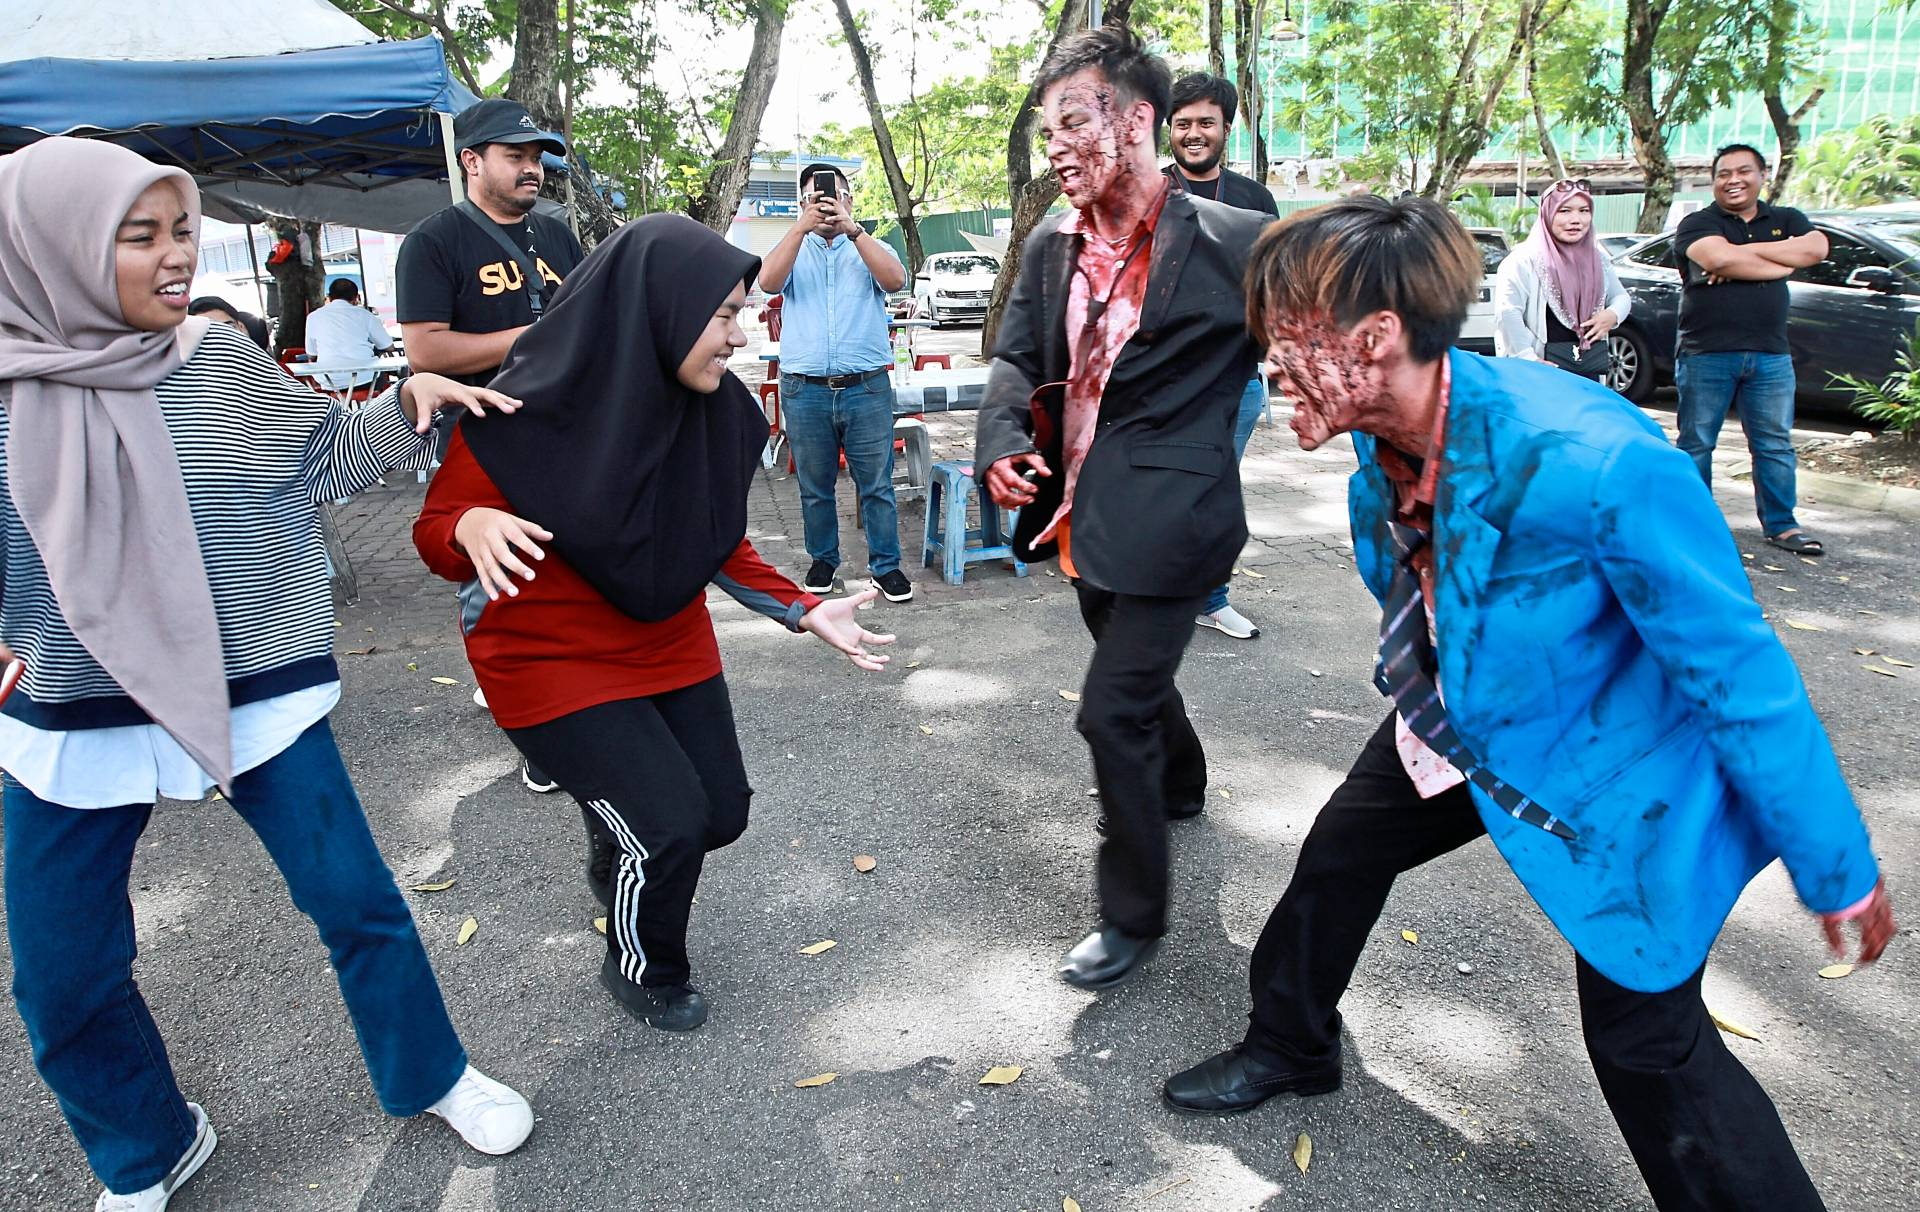 Visitors cringing at the sight of the zombies near Tasik Taman Sri Rampai, Kuala Lumpur.